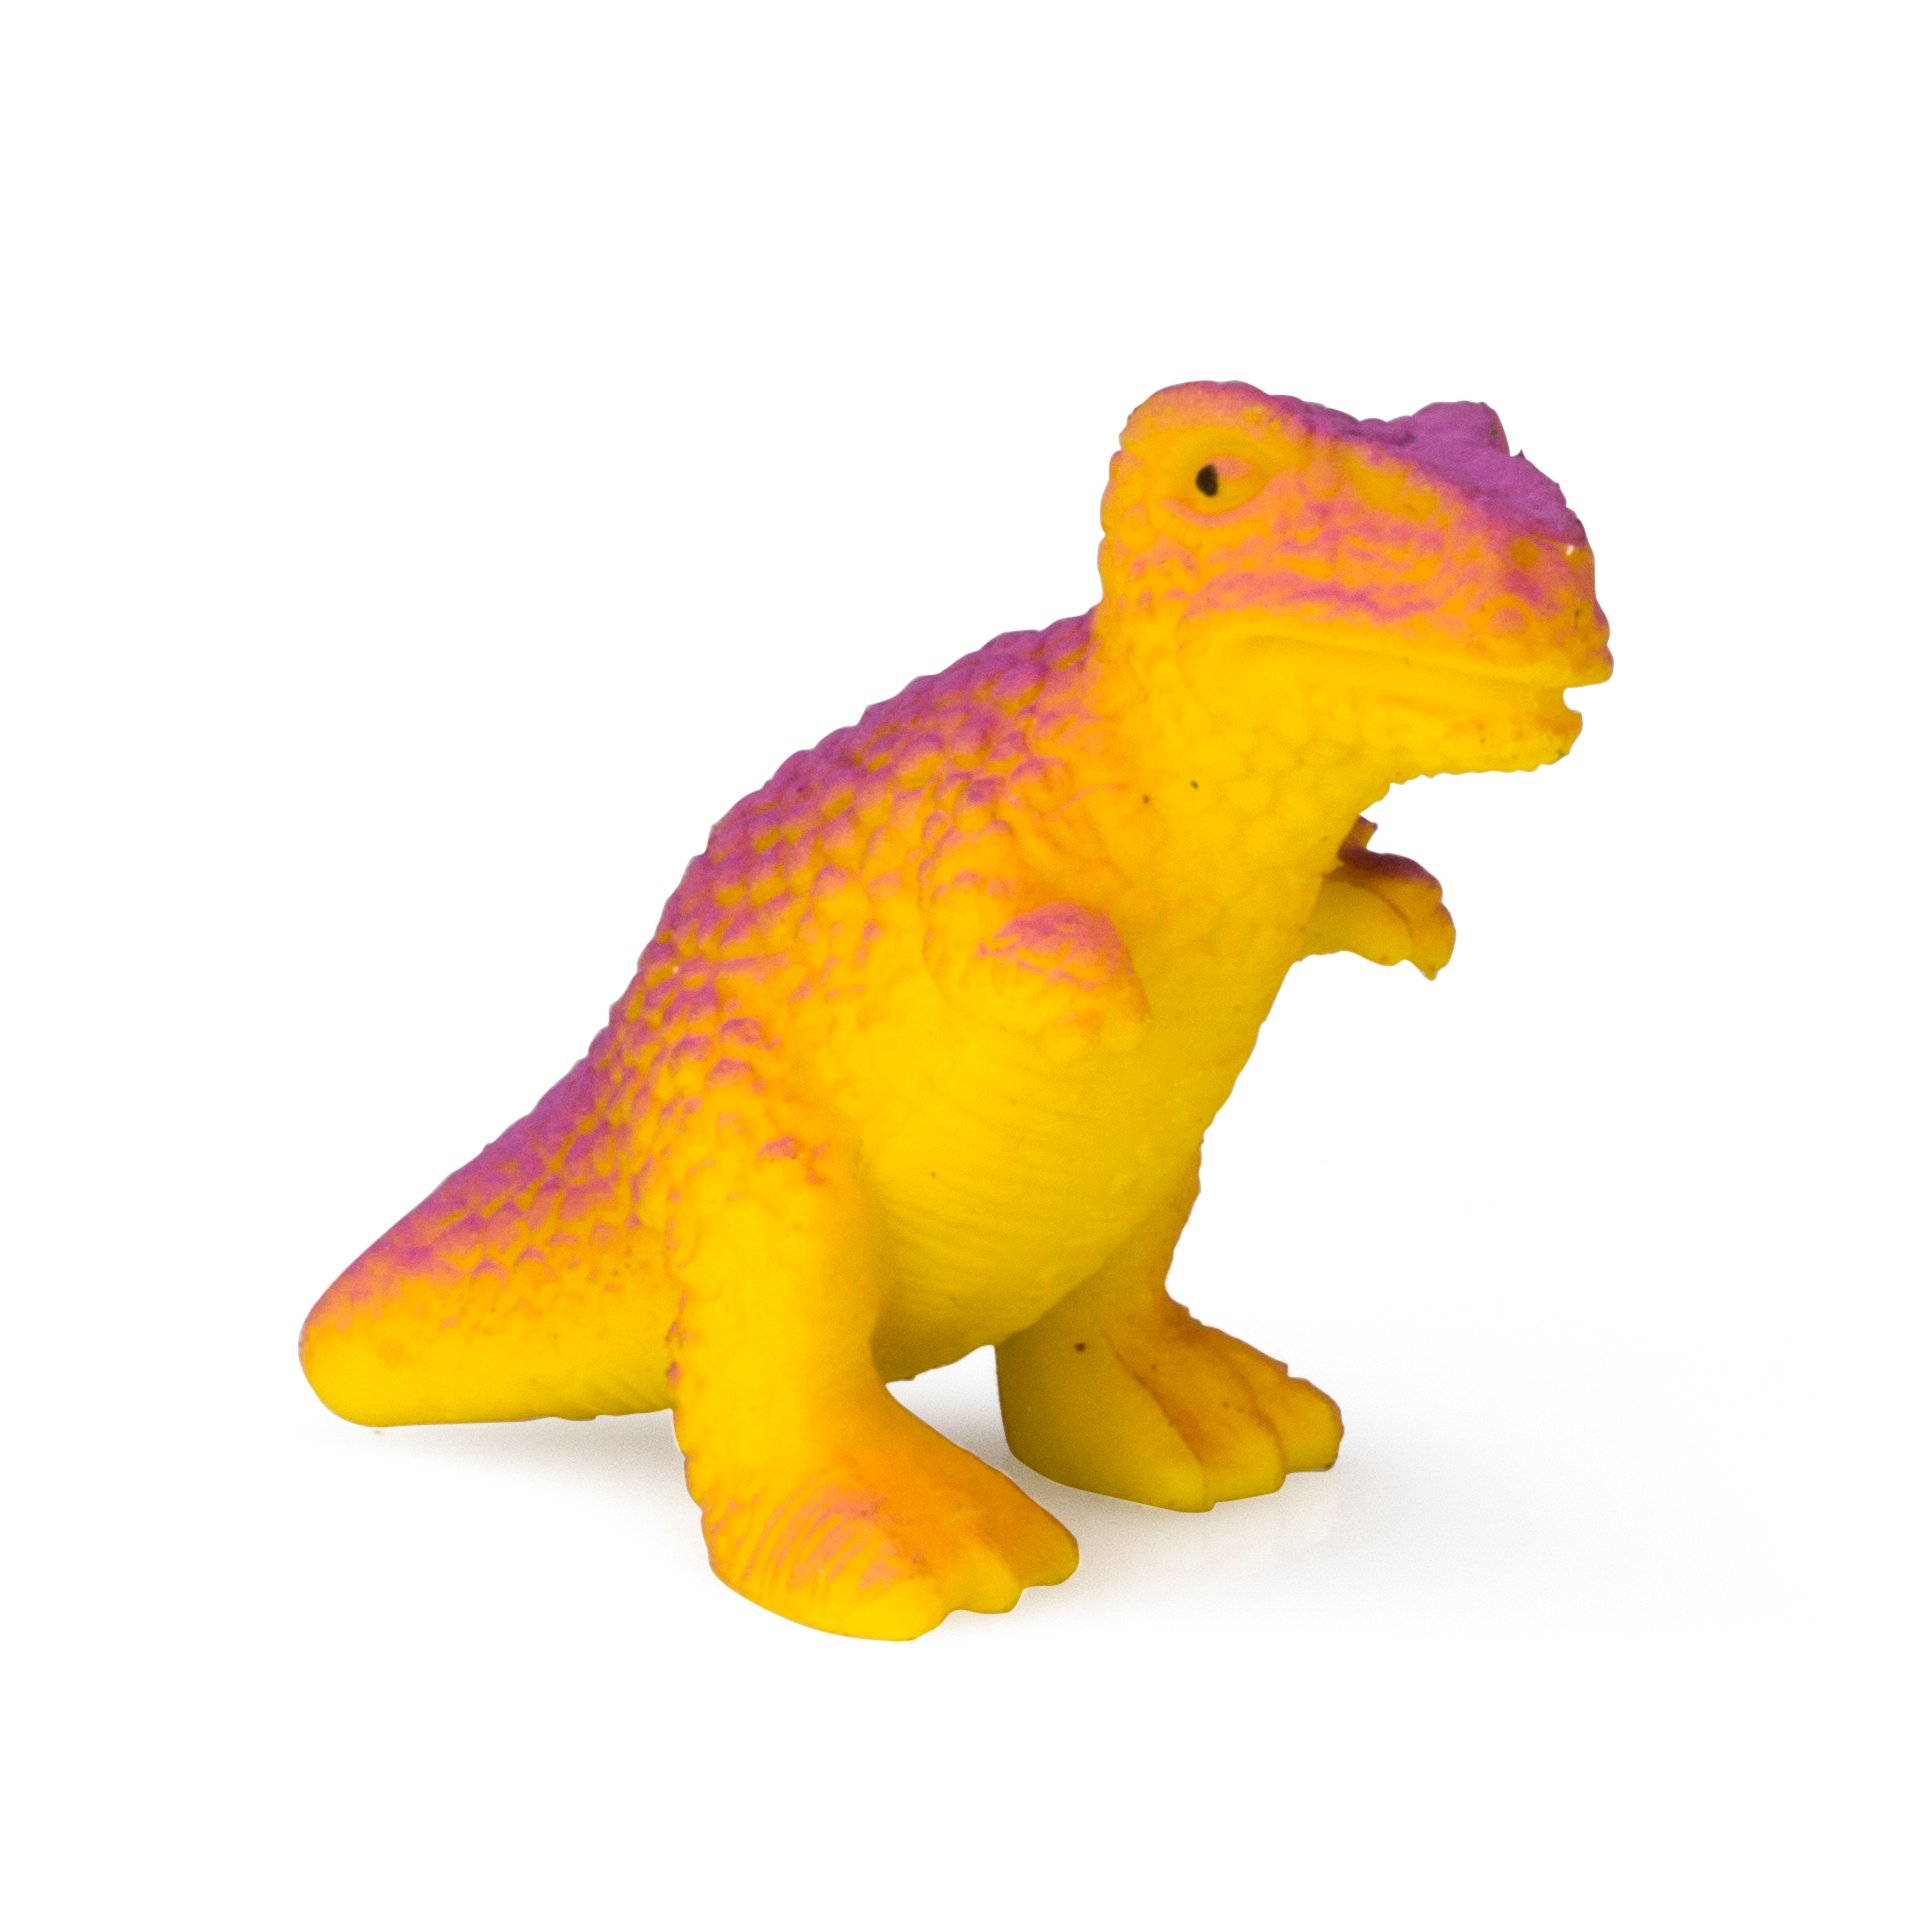 Animal Planet Grow Eggs- Dinosaur - Hatch and Grow Three Different Super-Sized Dinos (Series 1) by Animal Planet (Image #2)